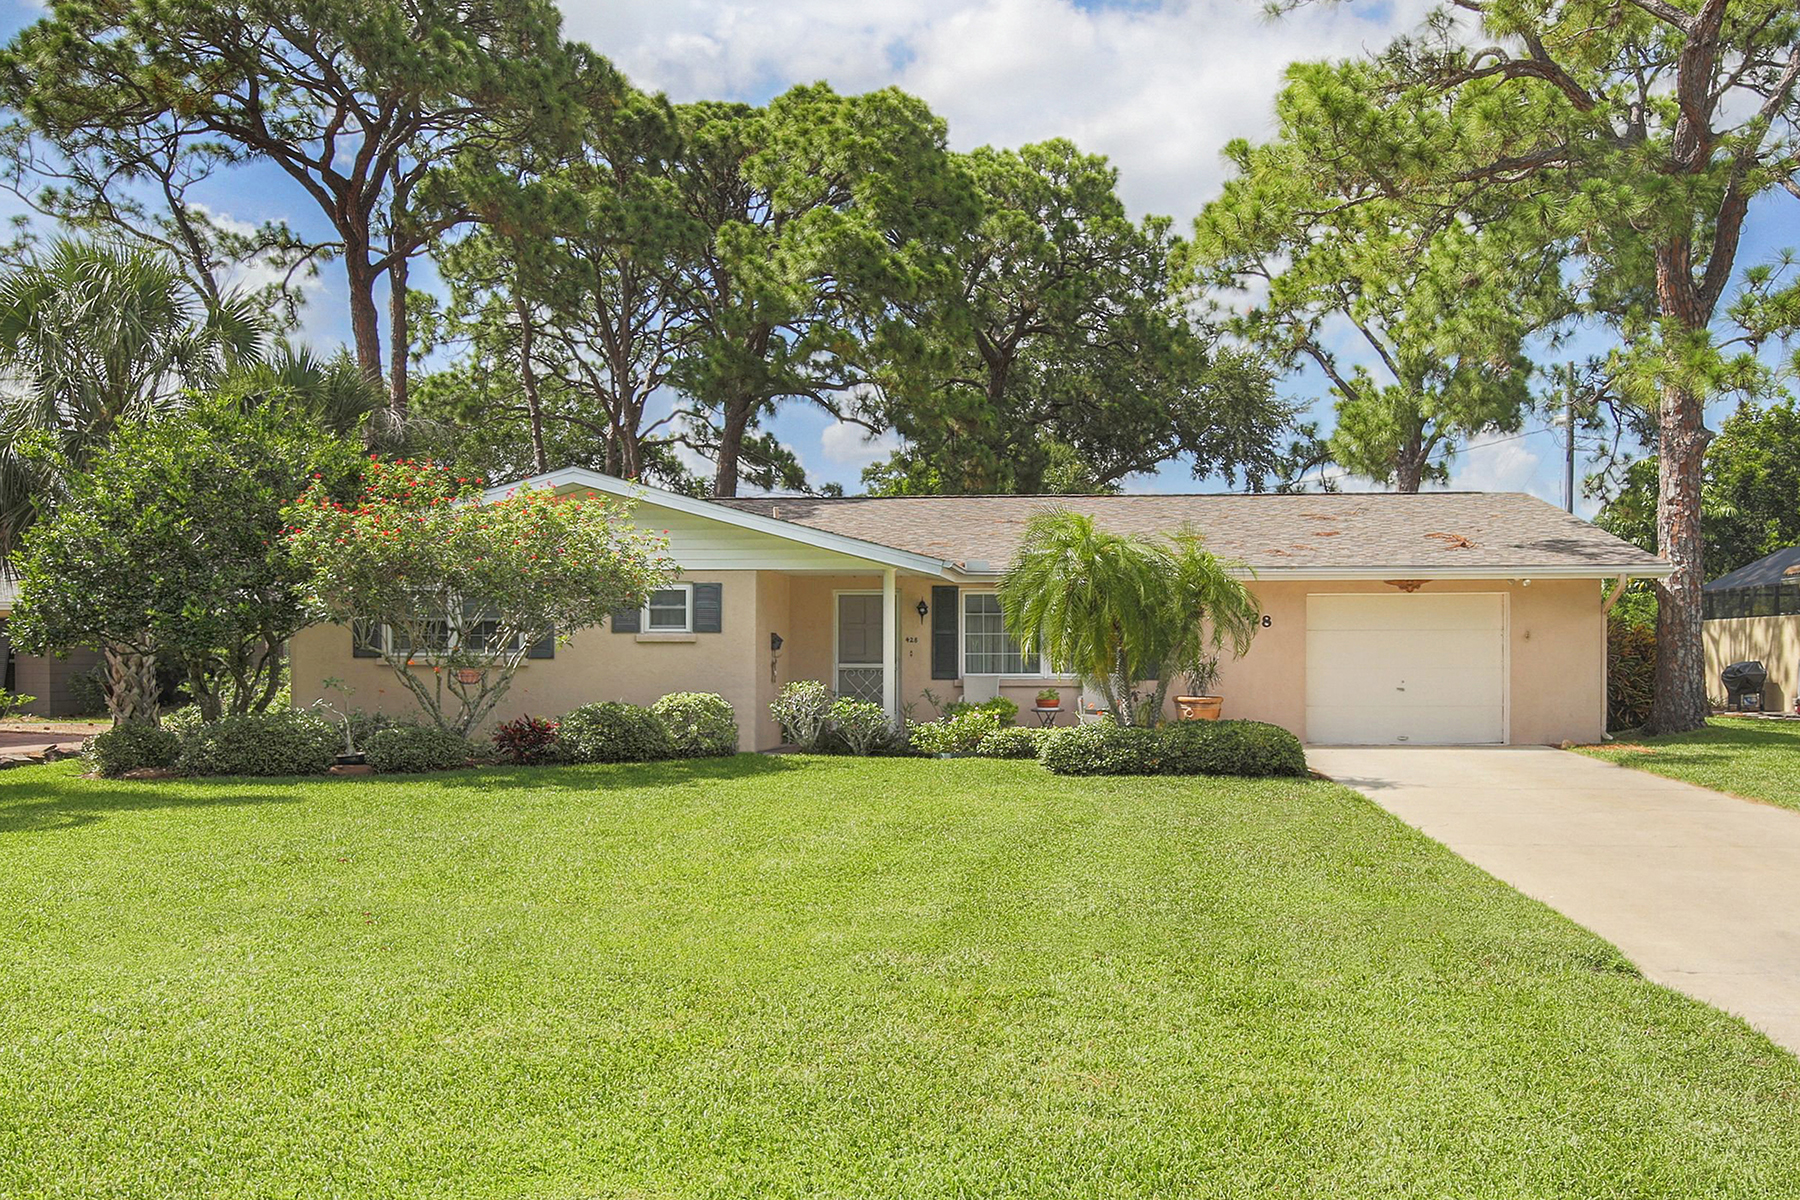 Single Family Home for Sale at VENICE ISLAND 428 Maggiore Rd Venice, Florida, 34285 United States